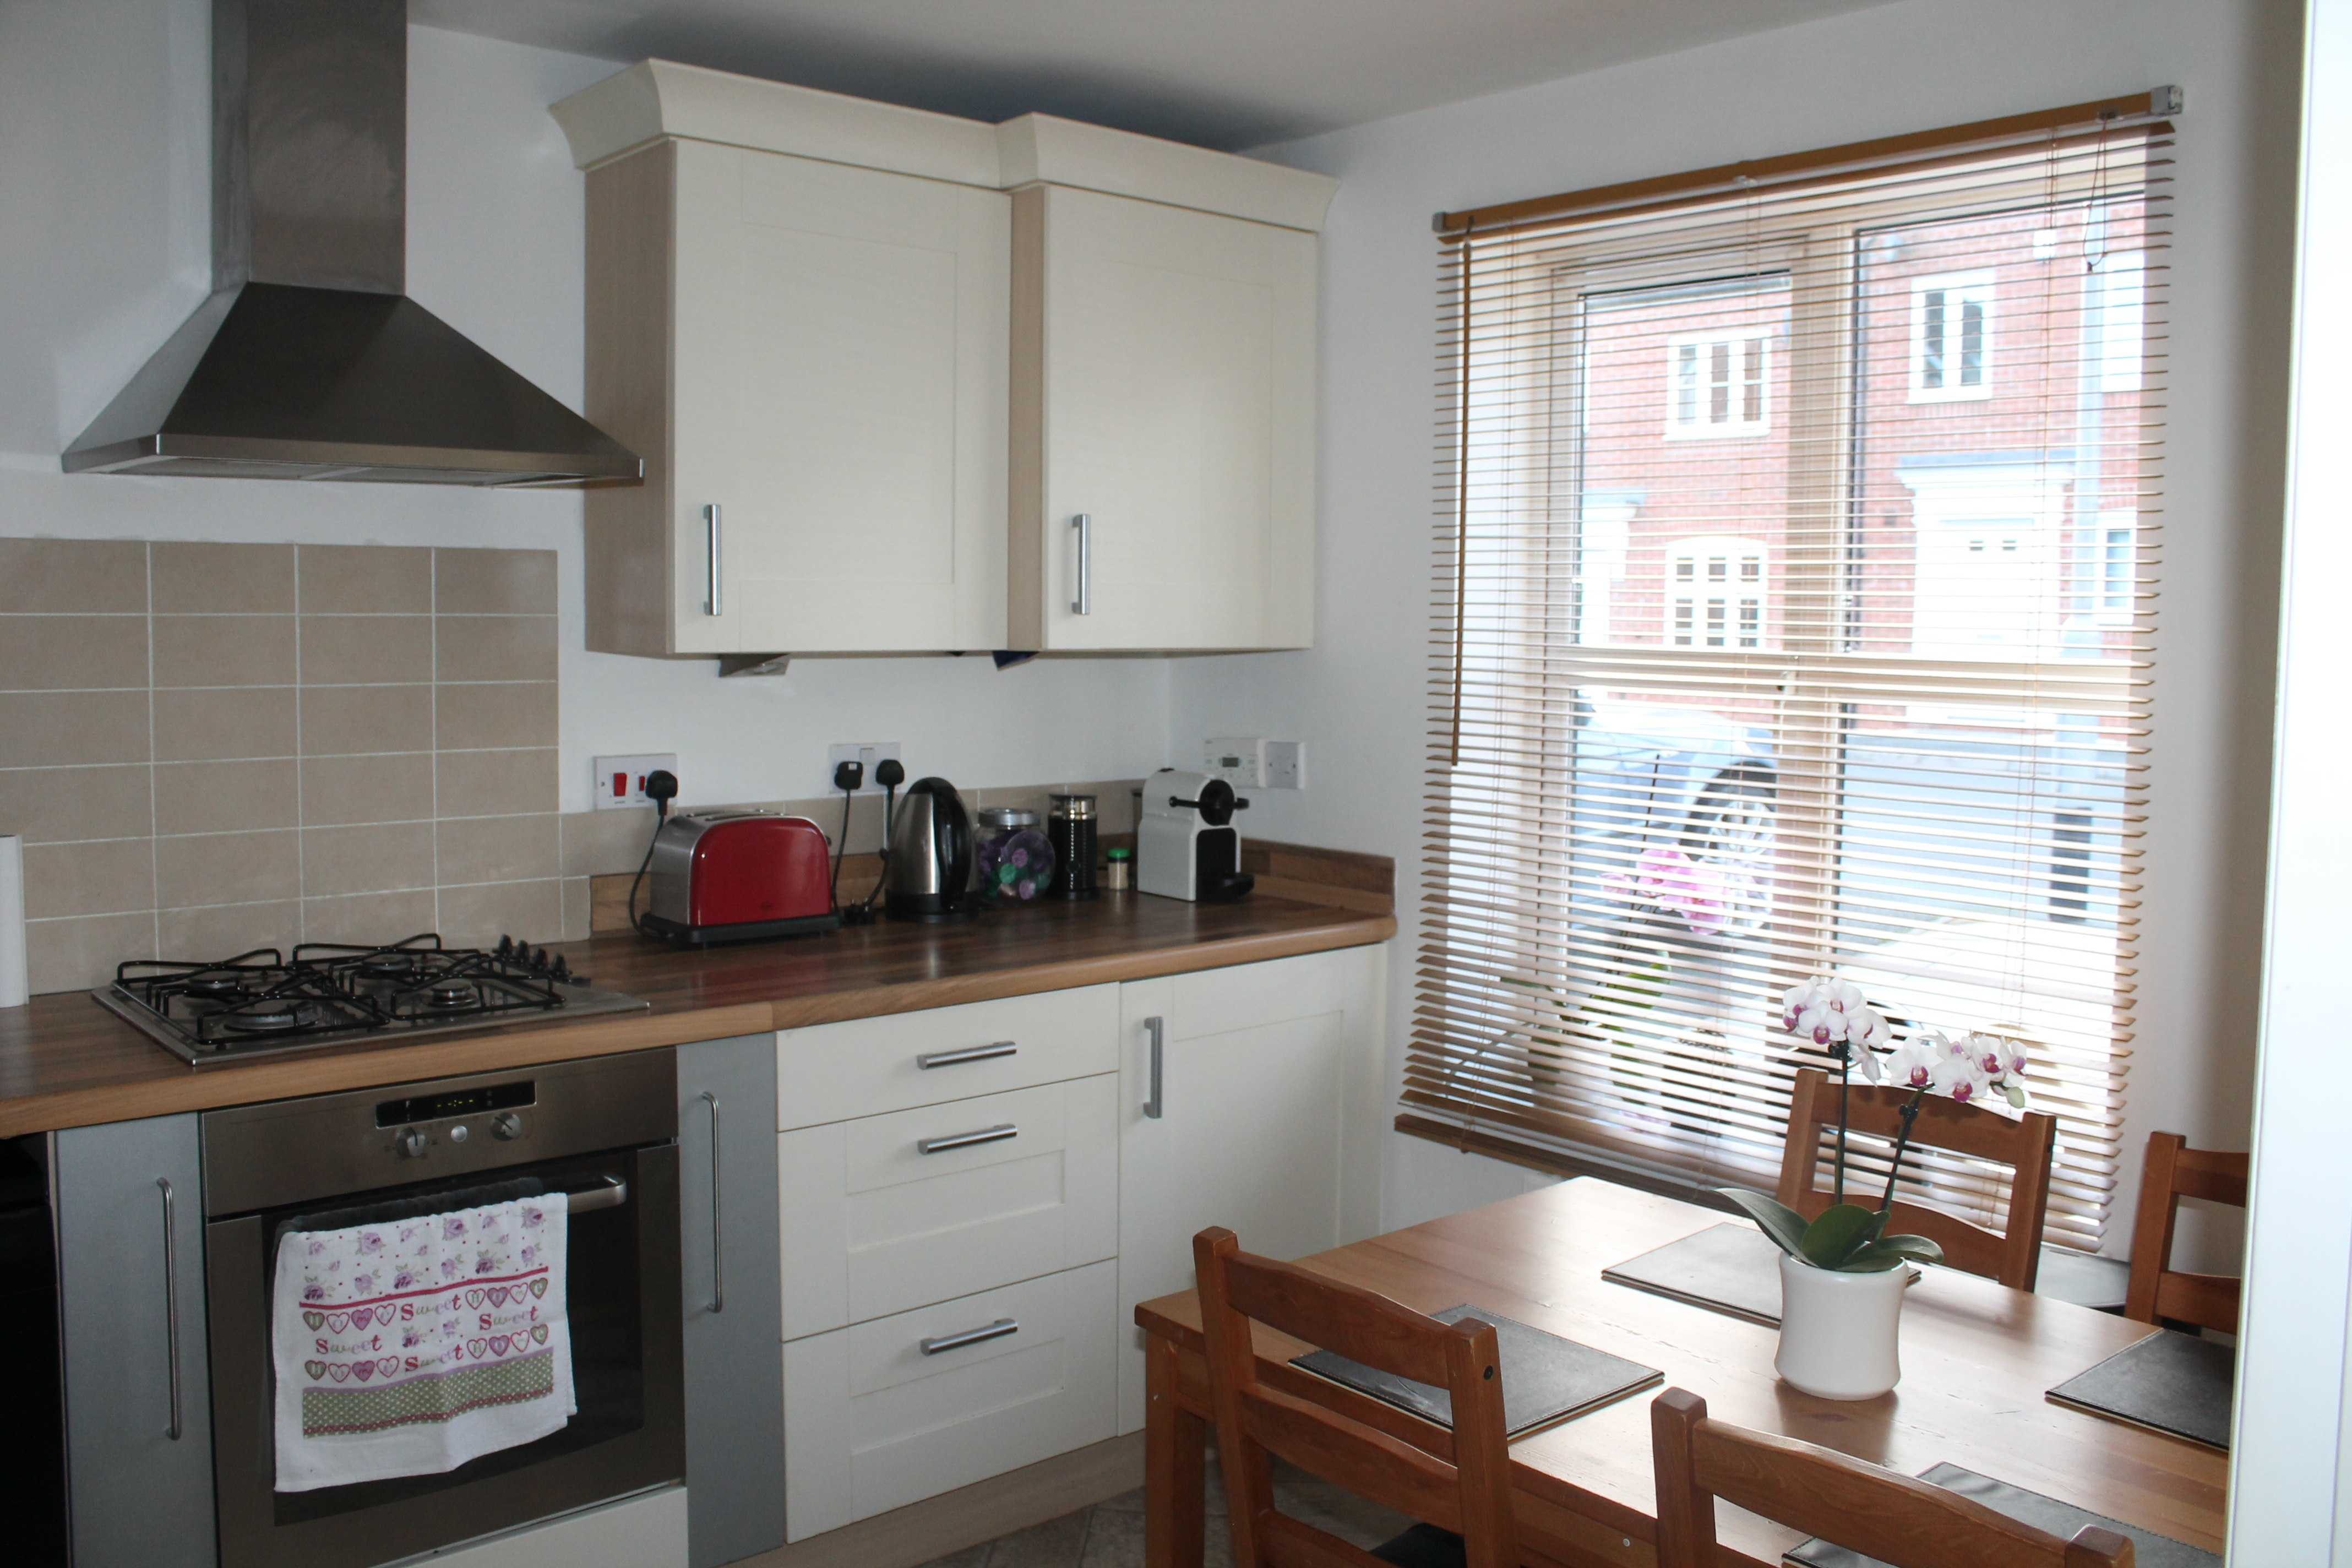 Reallocating: Our New Home In Pictures kitchen